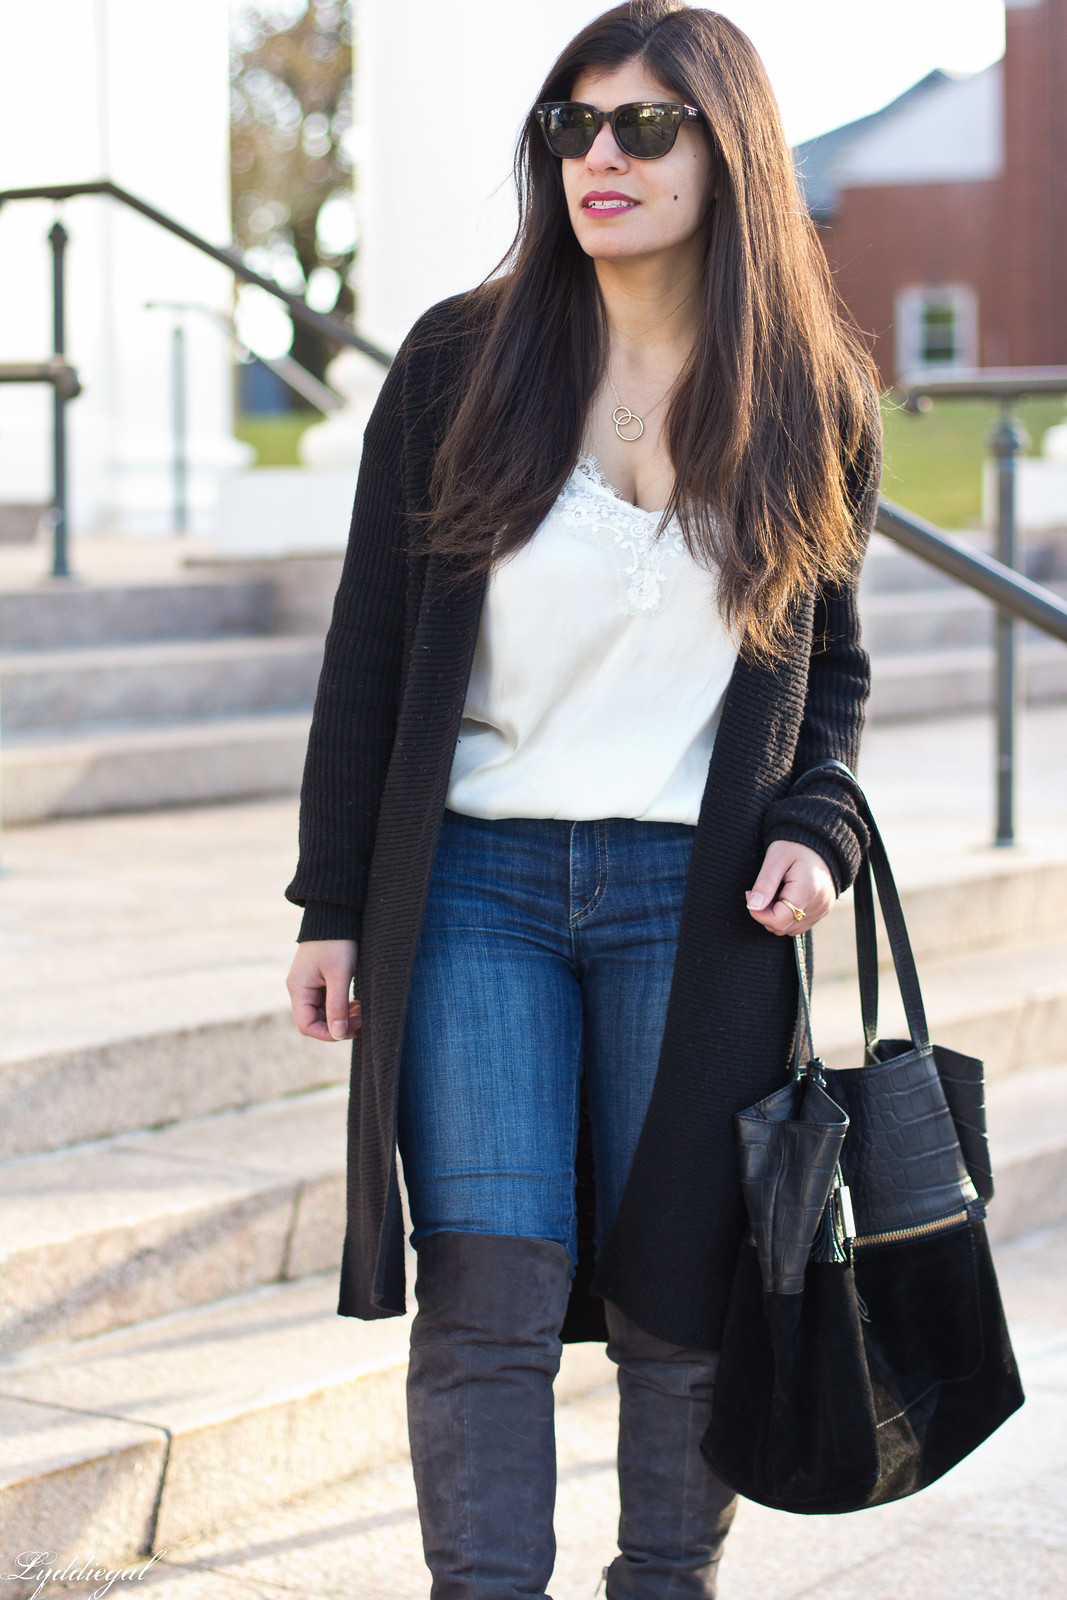 CT Fashion blogger wearing a lace cami, black long cardigan, over the knee boots, jeans-18.jpg